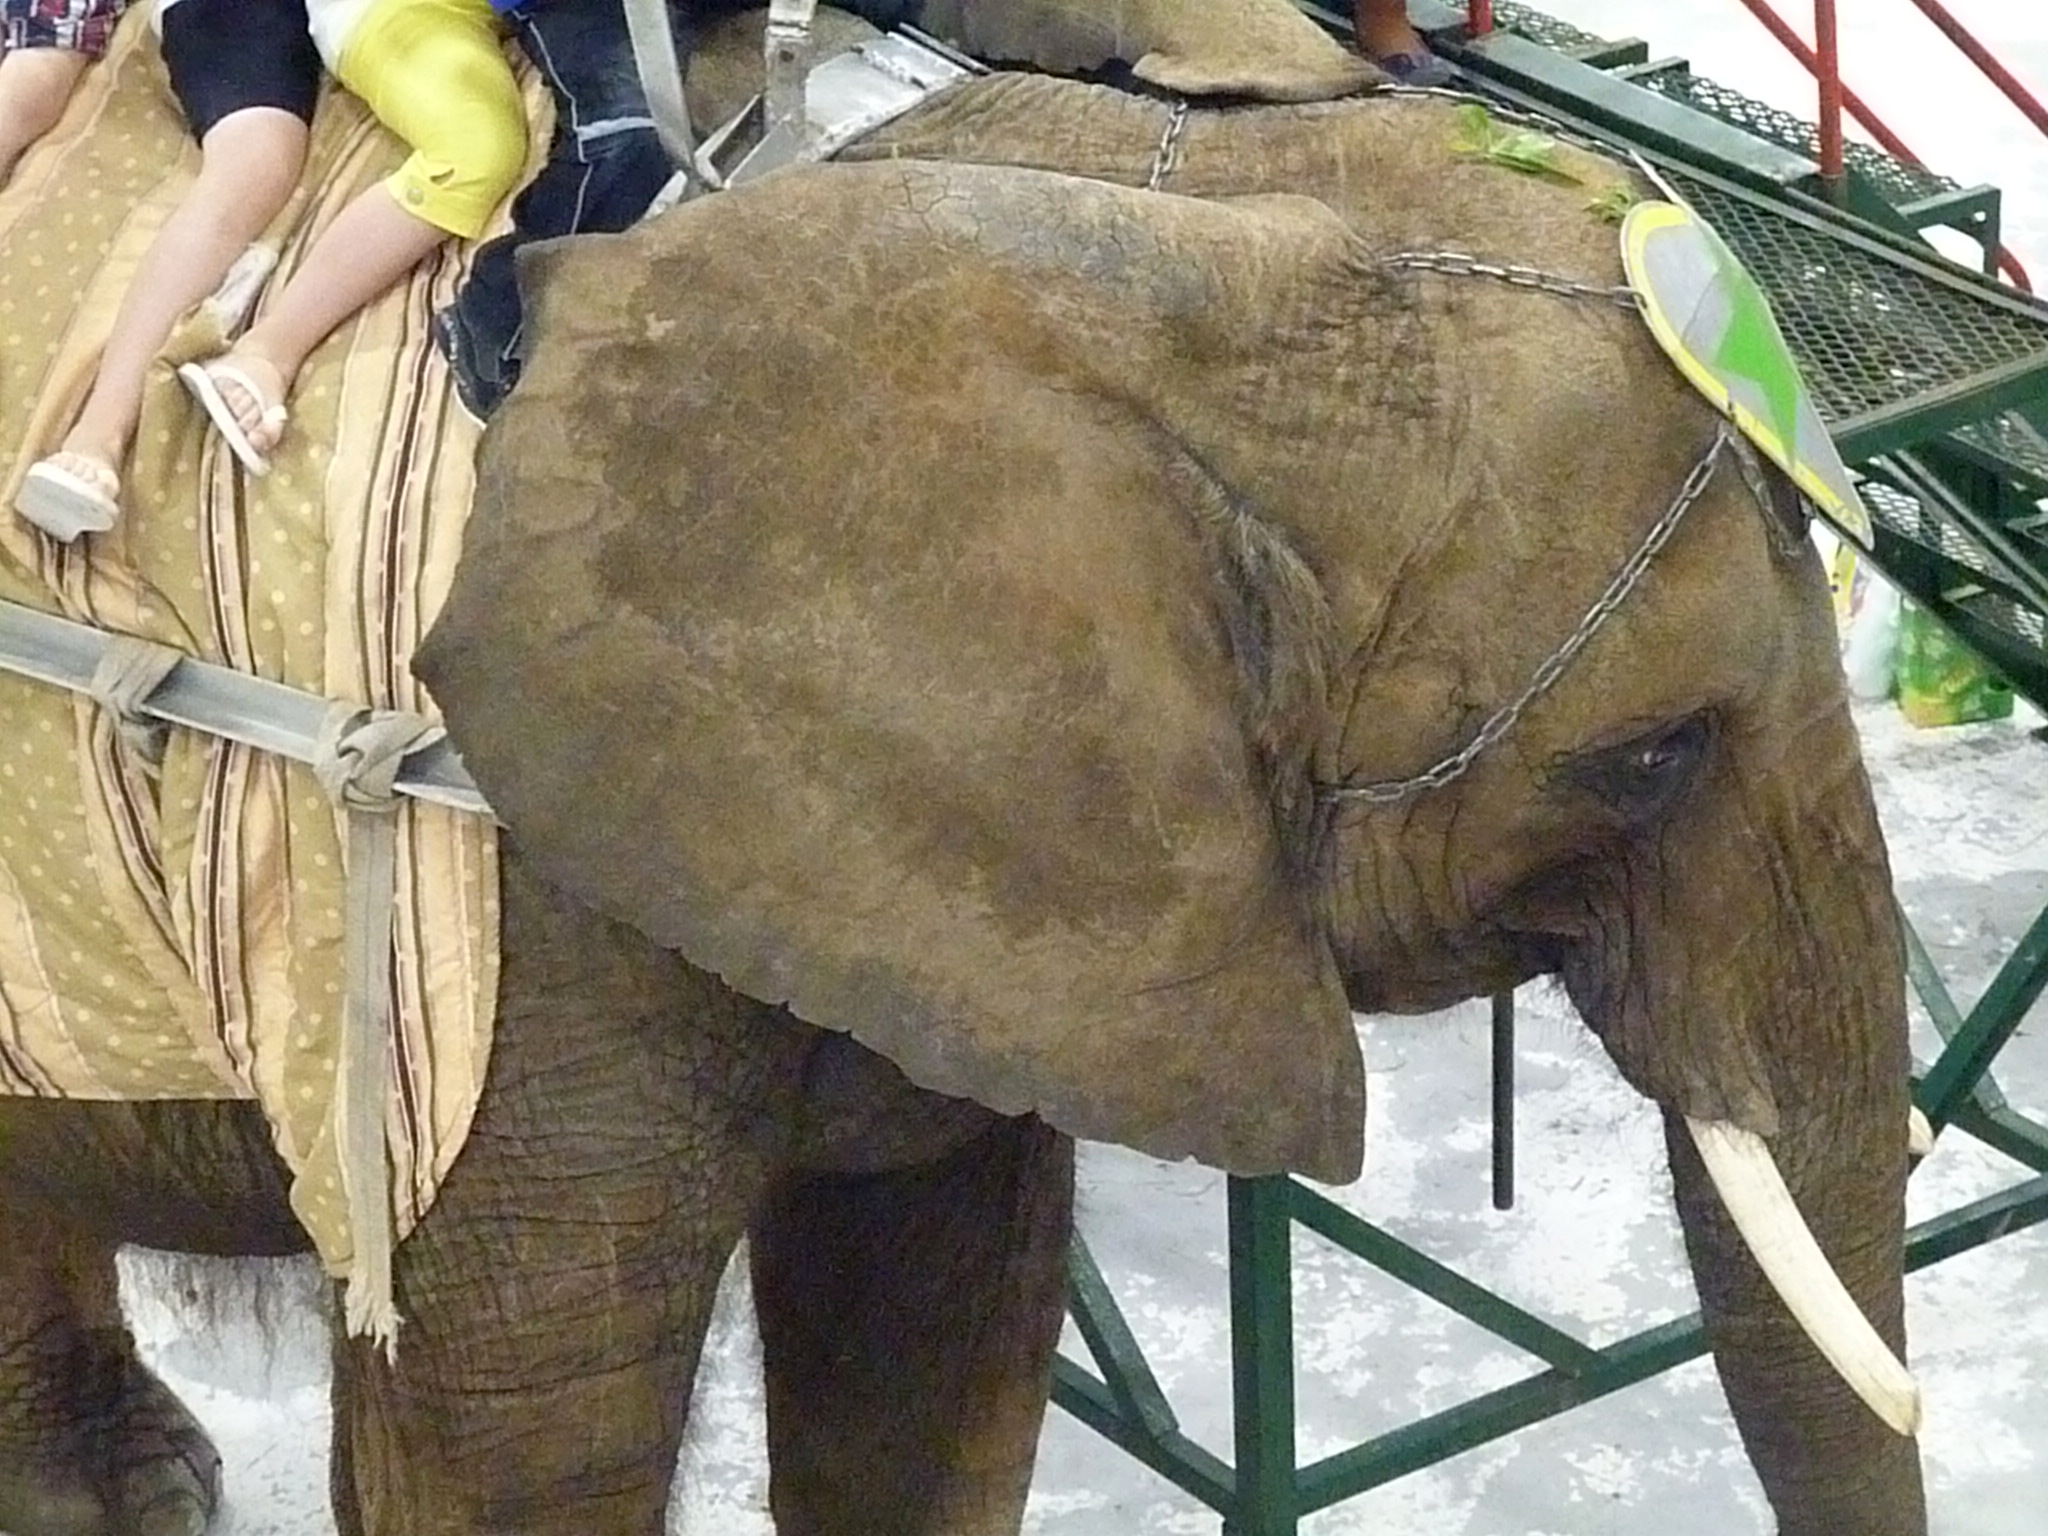 OUTRAGEOUS! SPEAK OUT!  Tell USDA To Do Its Job And Help Elephant Nosey! Just days before Hugo Liebel was set to face a hearing on March 26, 2013 for 33 violations of the Animal Welfare Act (AWA), the USDA announced it had reached a settlement. Instead of revoking Liebel's license and handing down a maximum penalty of $330,000, the USDA settled with the agreement that Liebel would pay a meager civil penalty of $7,500 and cease and desist from violating the AWA.  PLZ SIGN & SHARE!